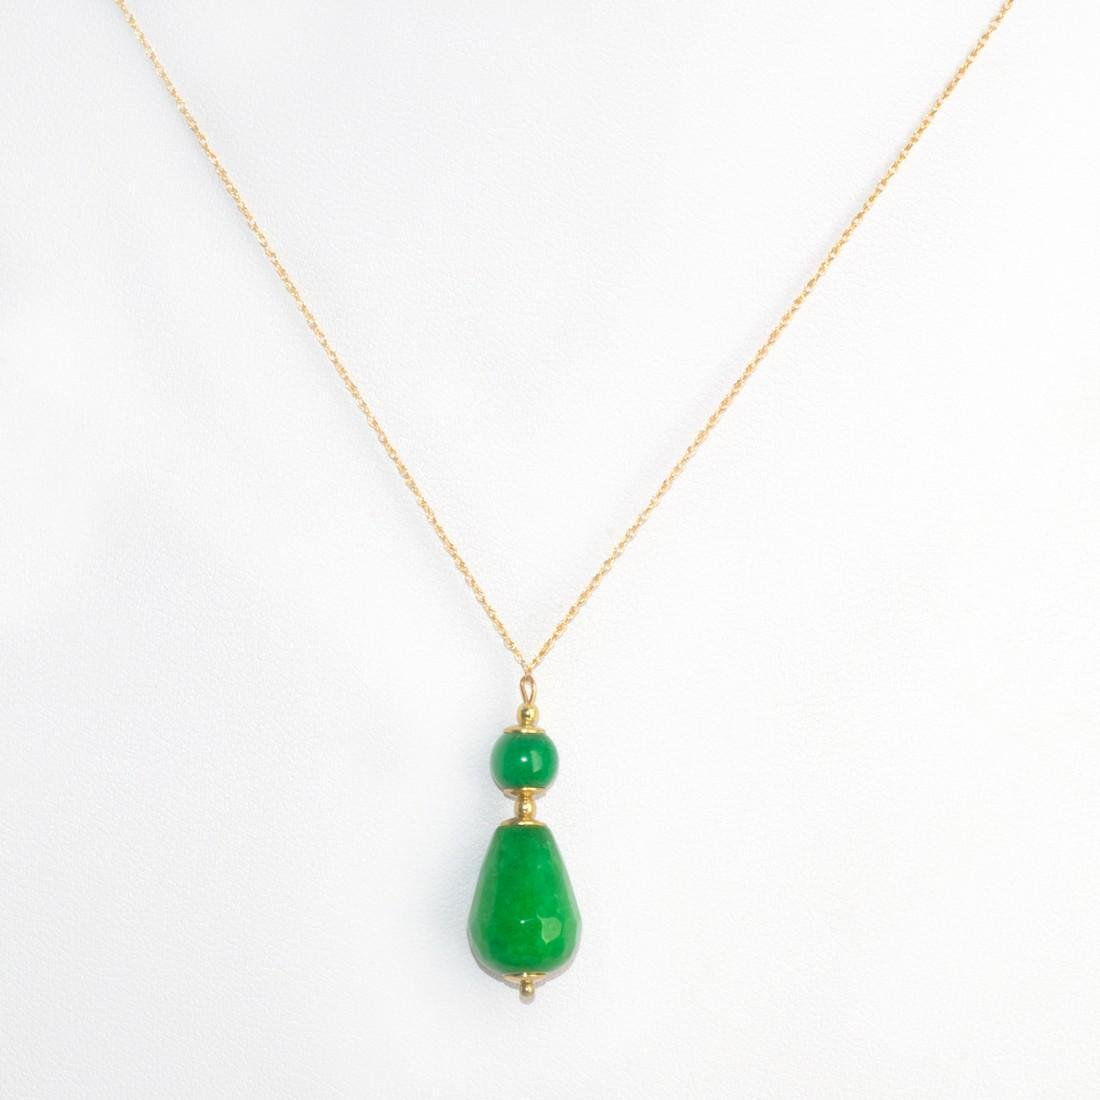 18K Retro Style Colier with Imperial Emerald Green Jade - 4